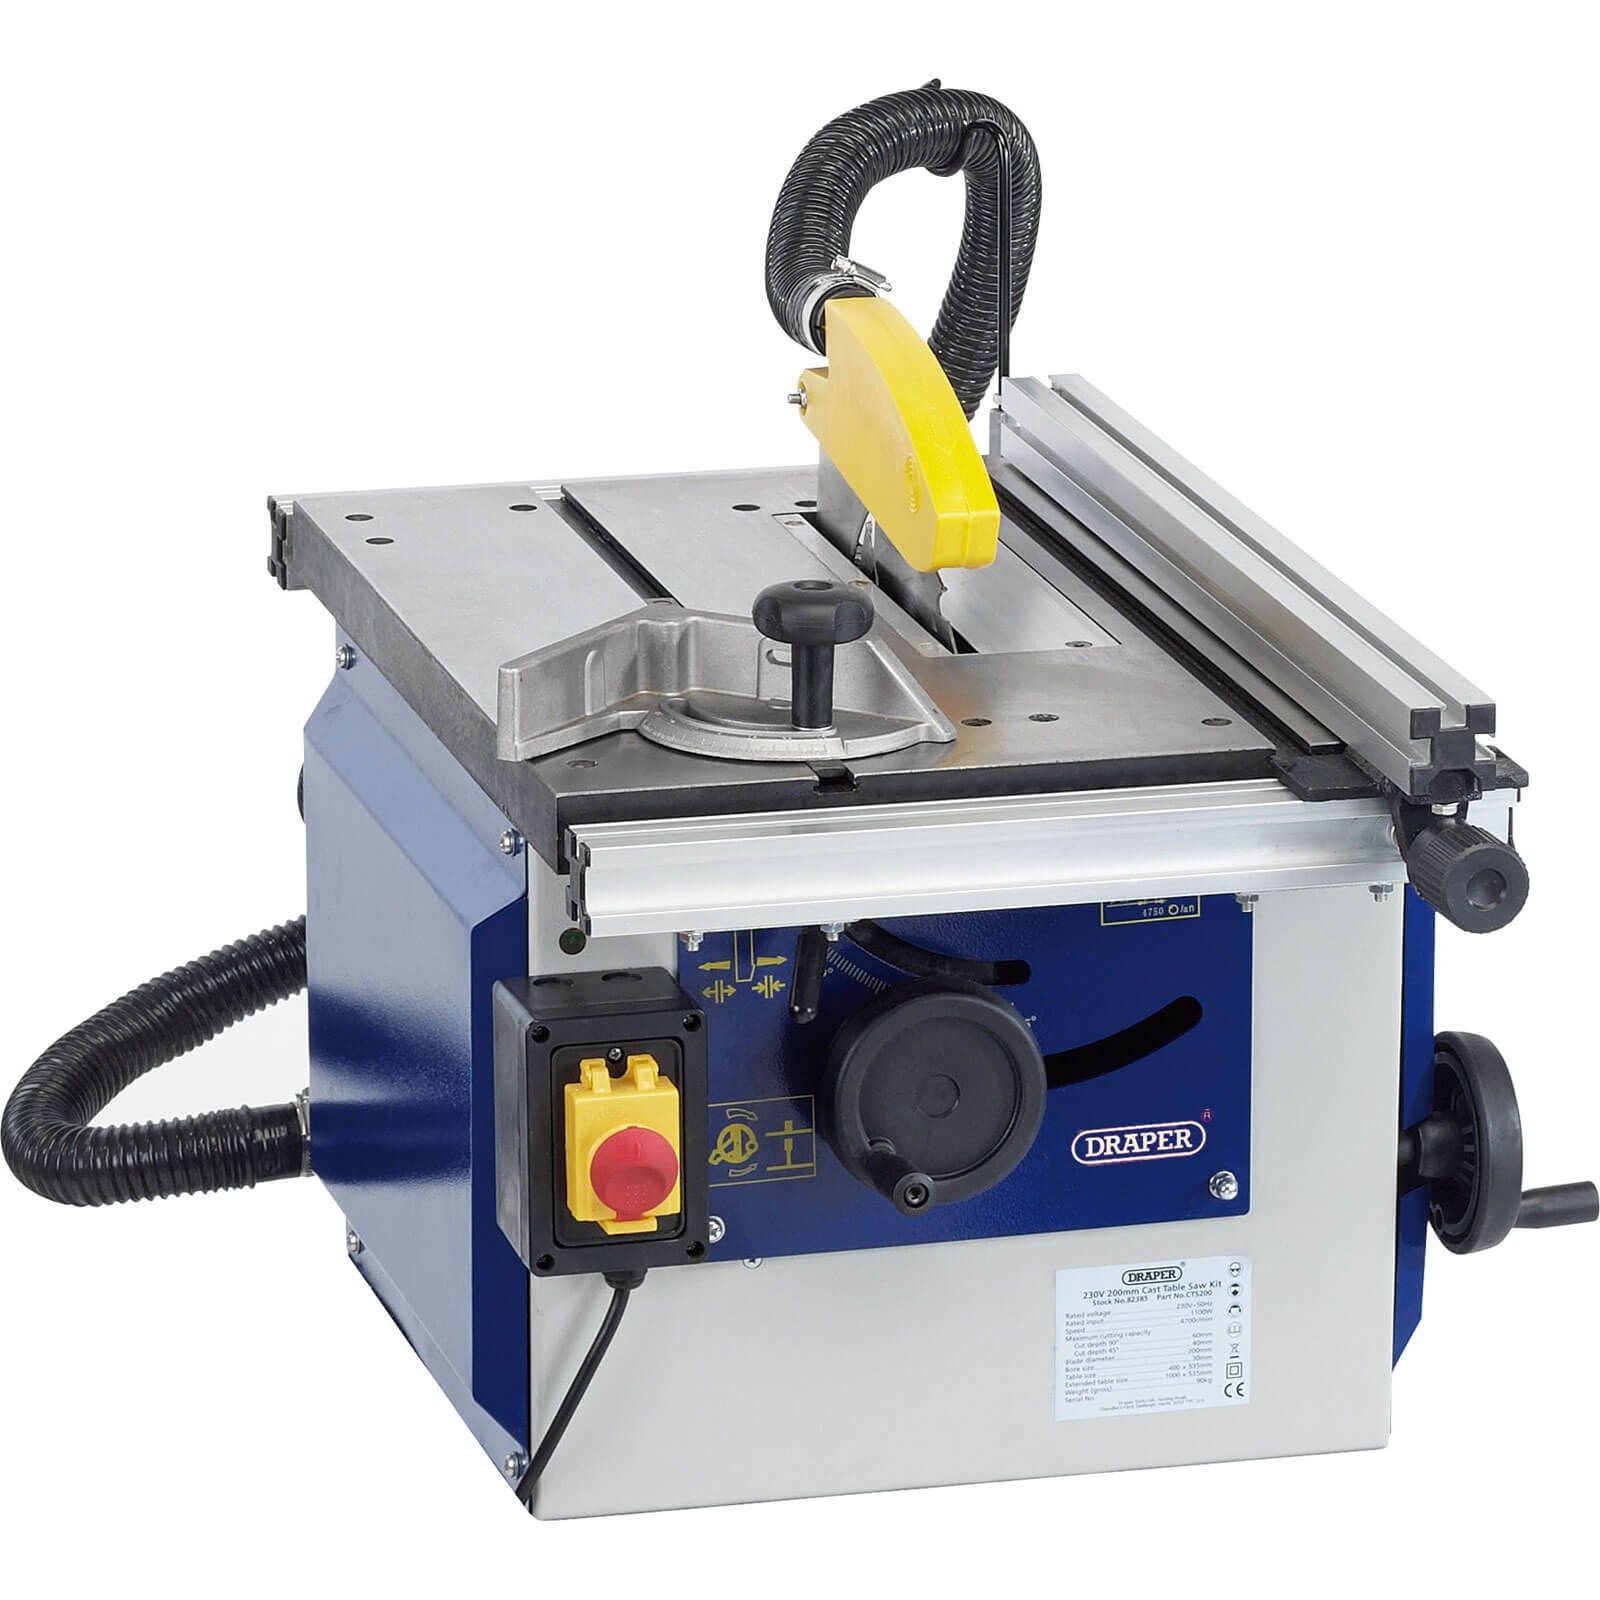 Draper Cts200a Cast Iron Table Saw